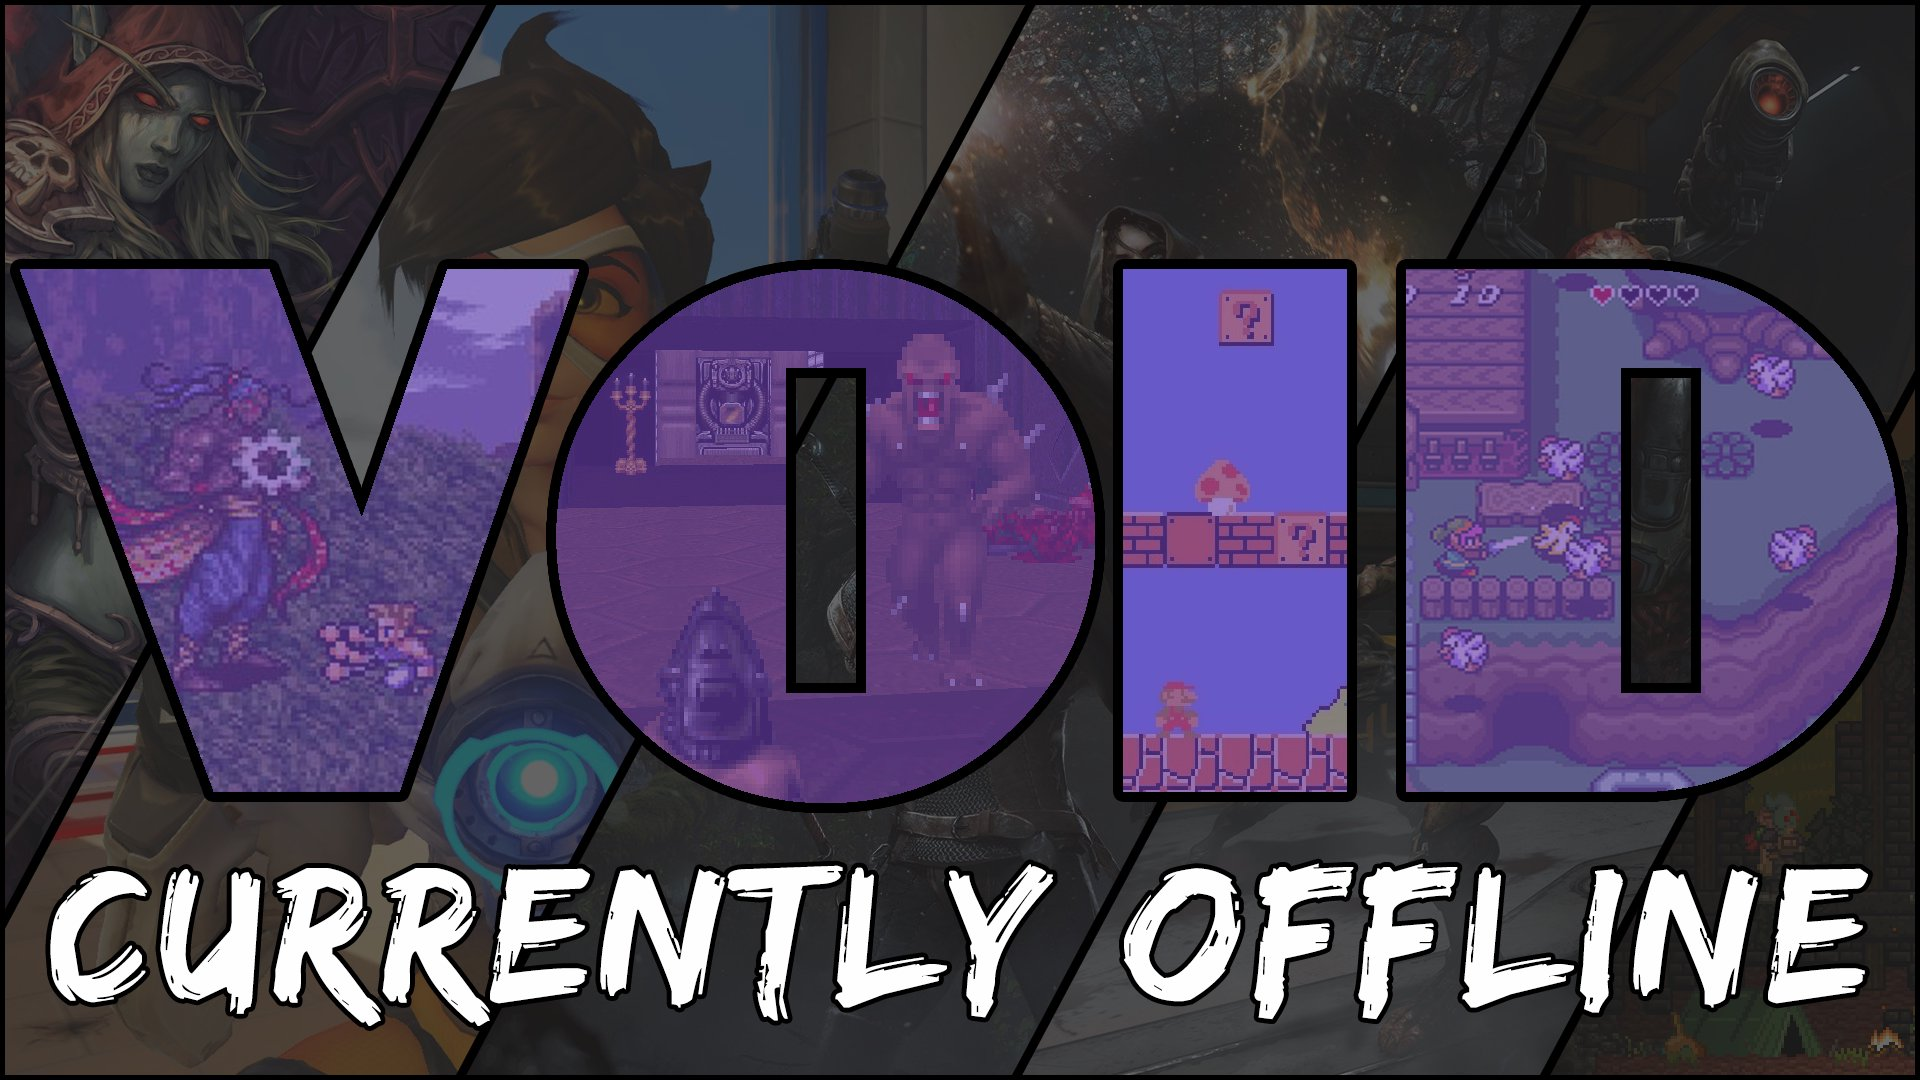 Twitch stream of void4ever